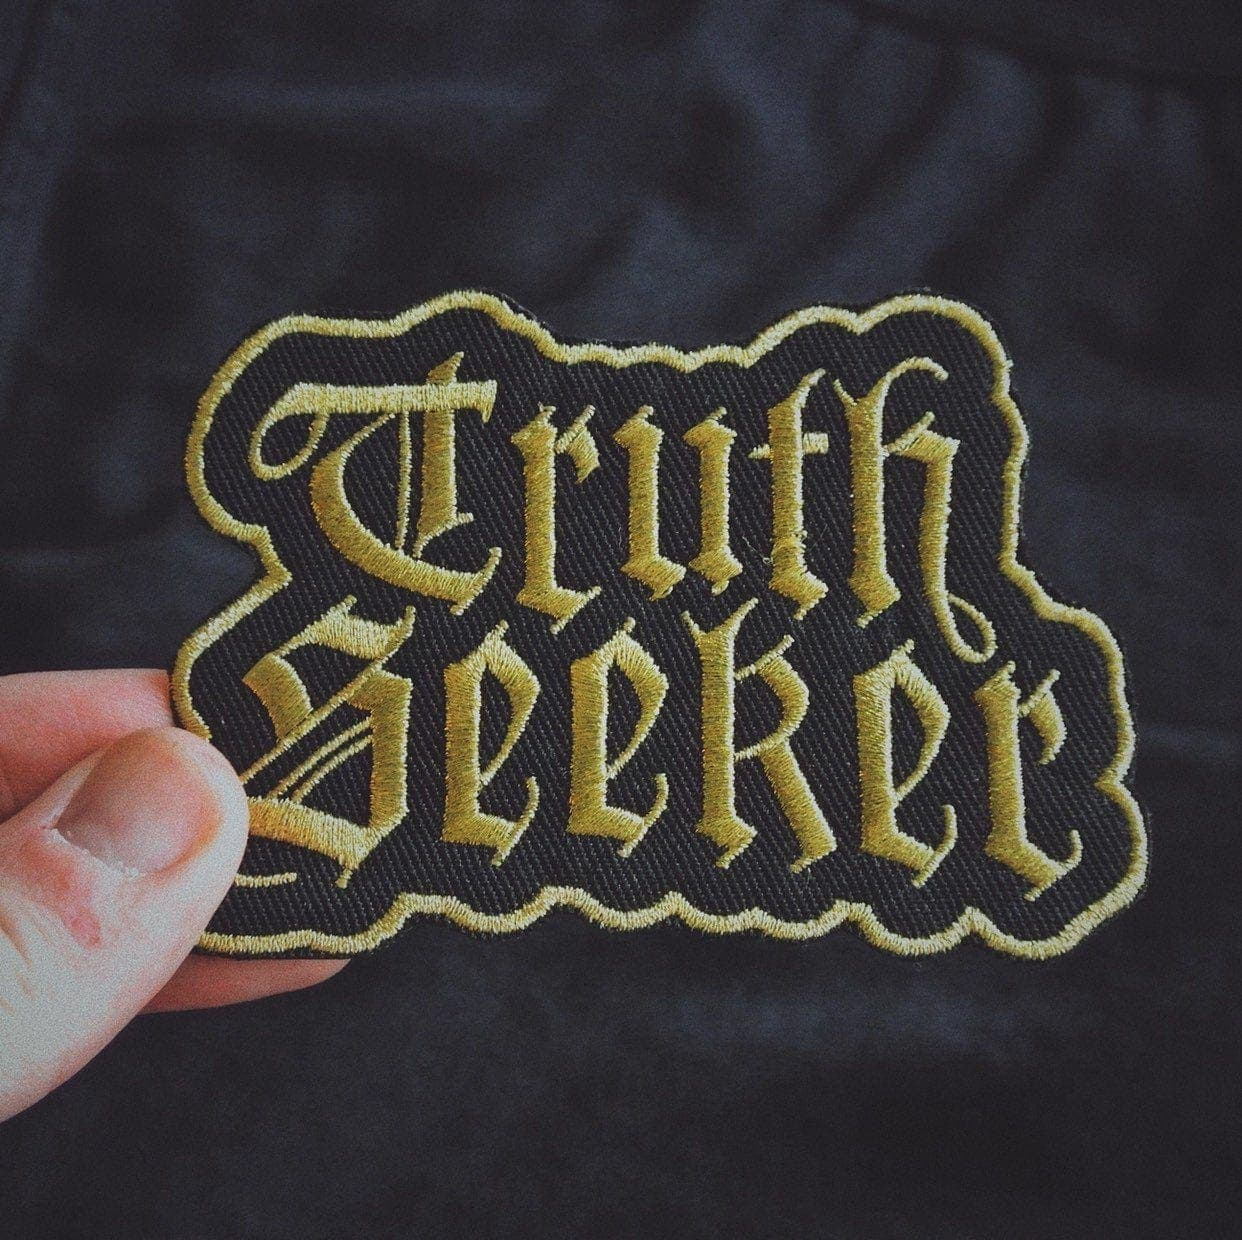 Gold Truth Seeker Patch